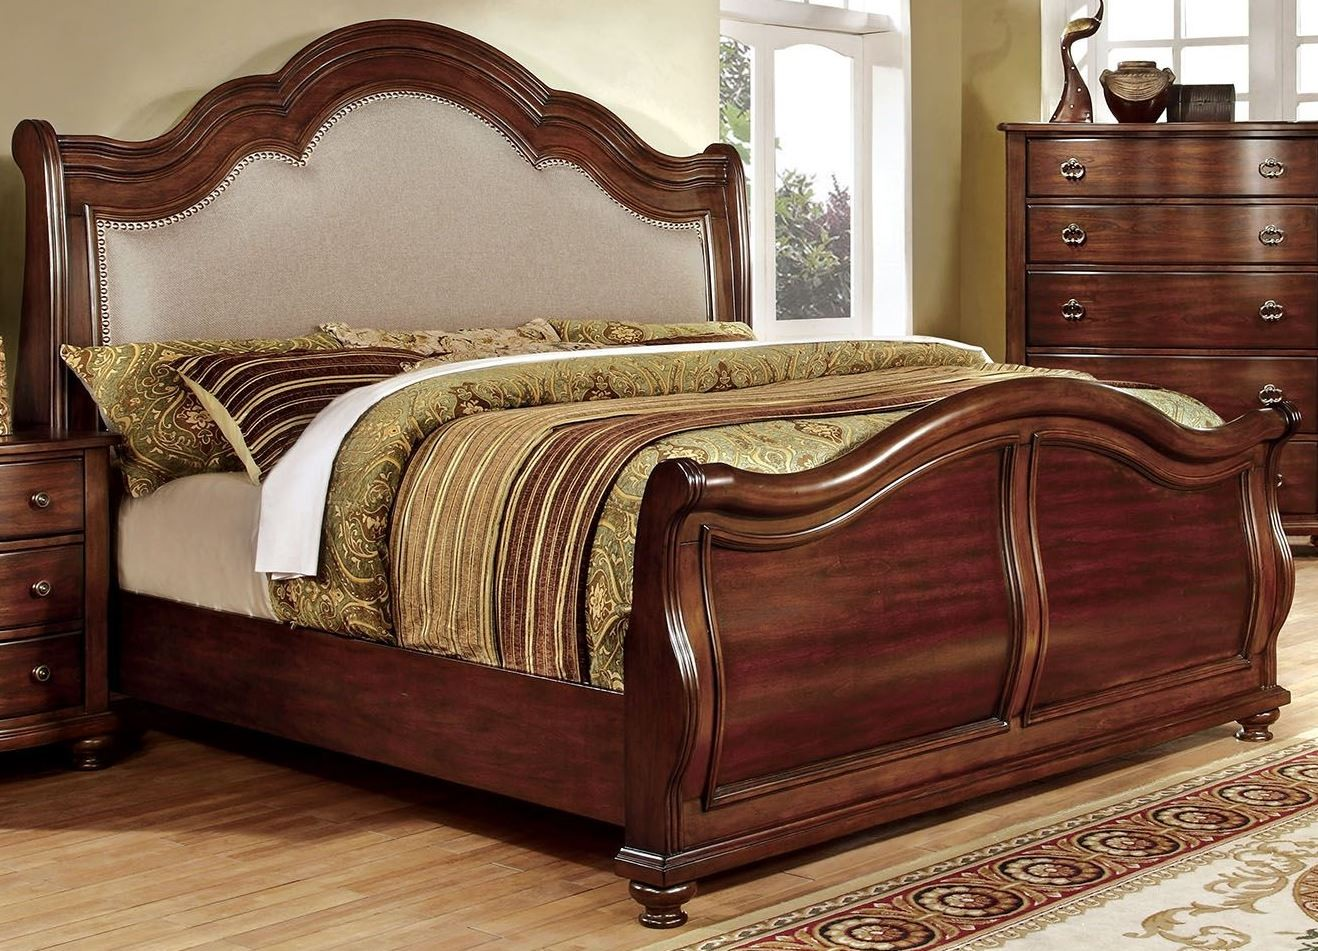 bellavista brown cherry king sleigh bed from furniture of america cm7350h ek bed coleman. Black Bedroom Furniture Sets. Home Design Ideas